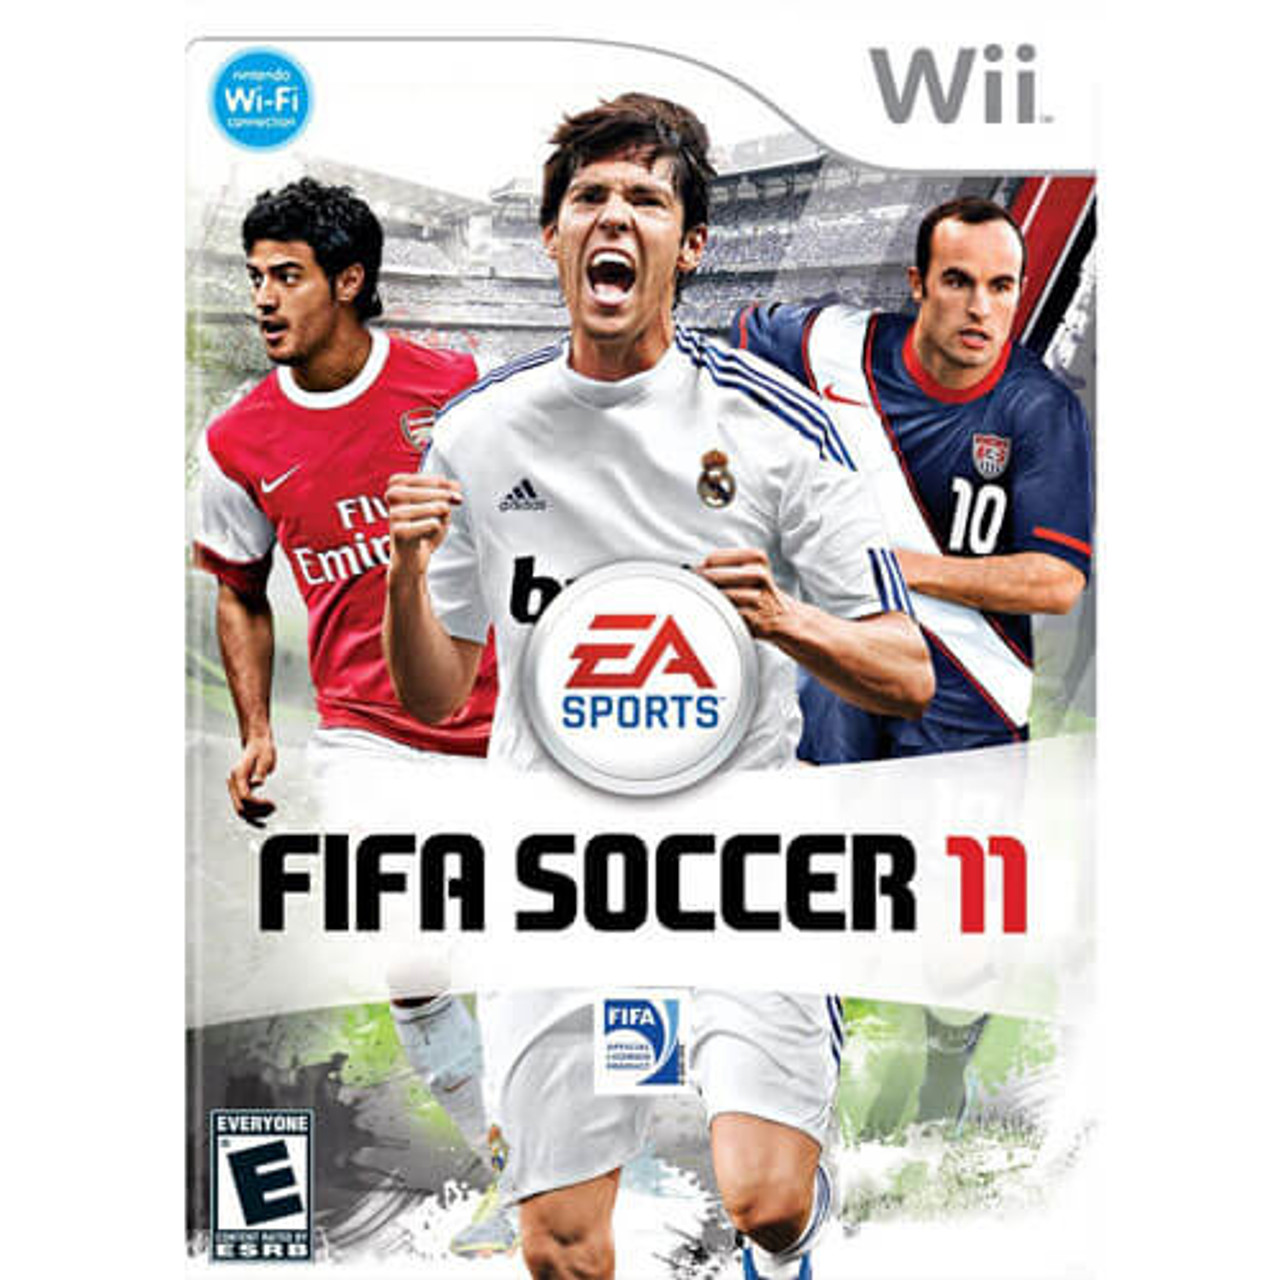 fifa soccer 11 nintendo wii game for sale dkoldies Sony PSP 2001 Manual PSP 3 System